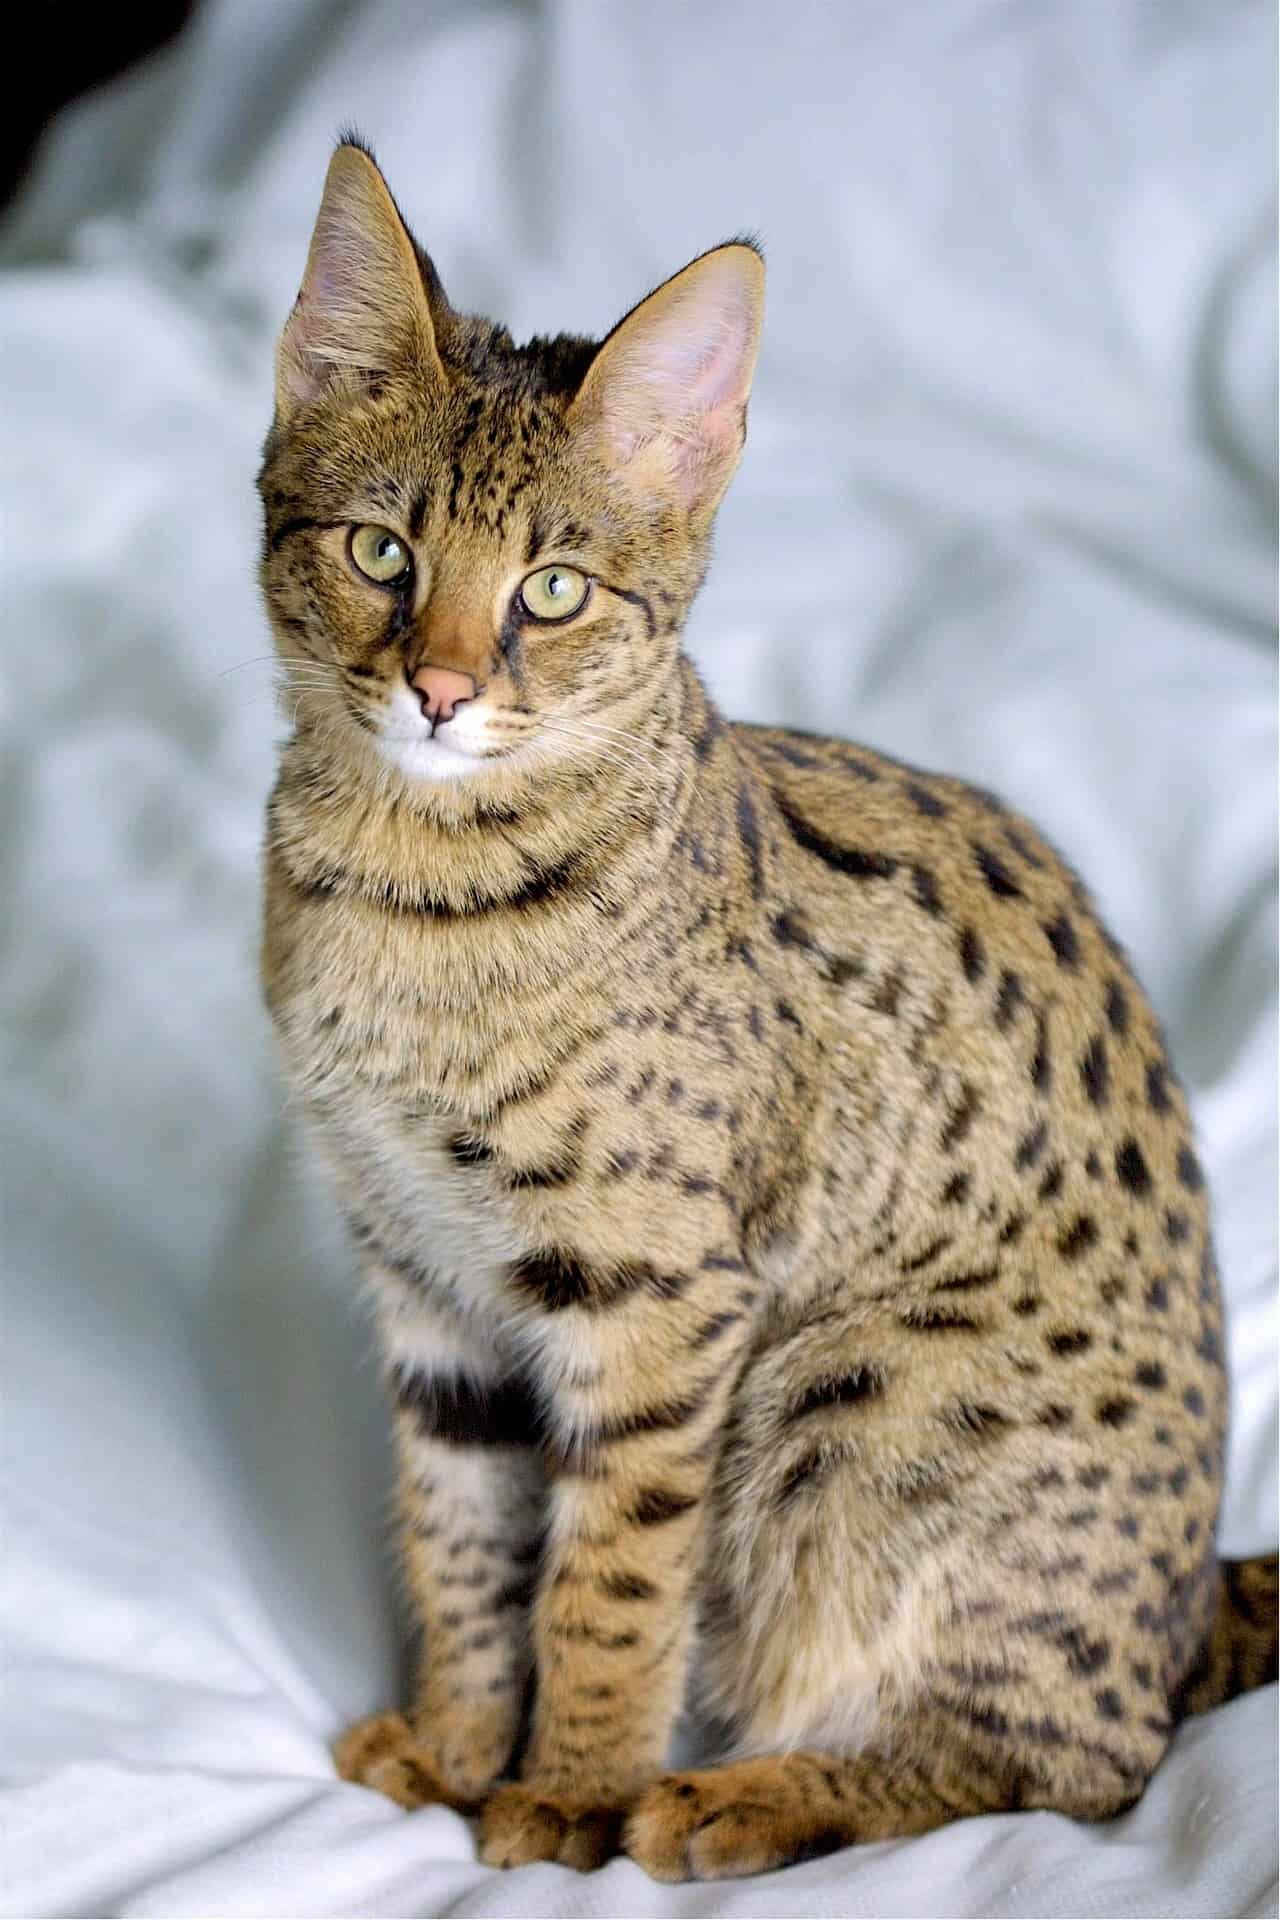 Savannah Cat: Some Interesting Facts About It